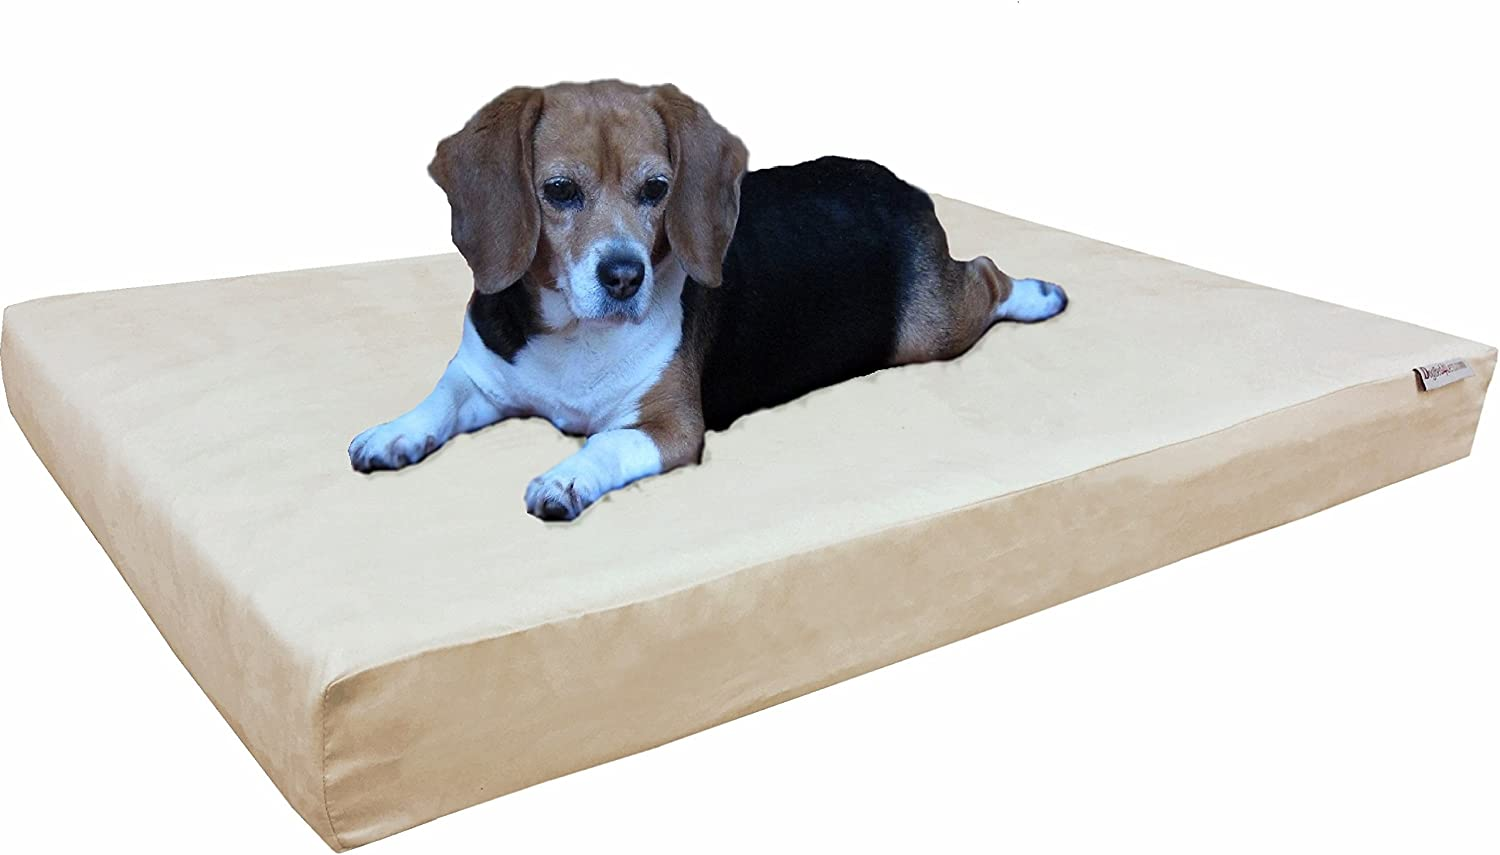 Dogbed4less Orthopedic Medium Large Dog Bed with Memory Foam for Pet, Waterproof Liner, Washable Microsuede Khaki Cover, 37X27X4 Inch